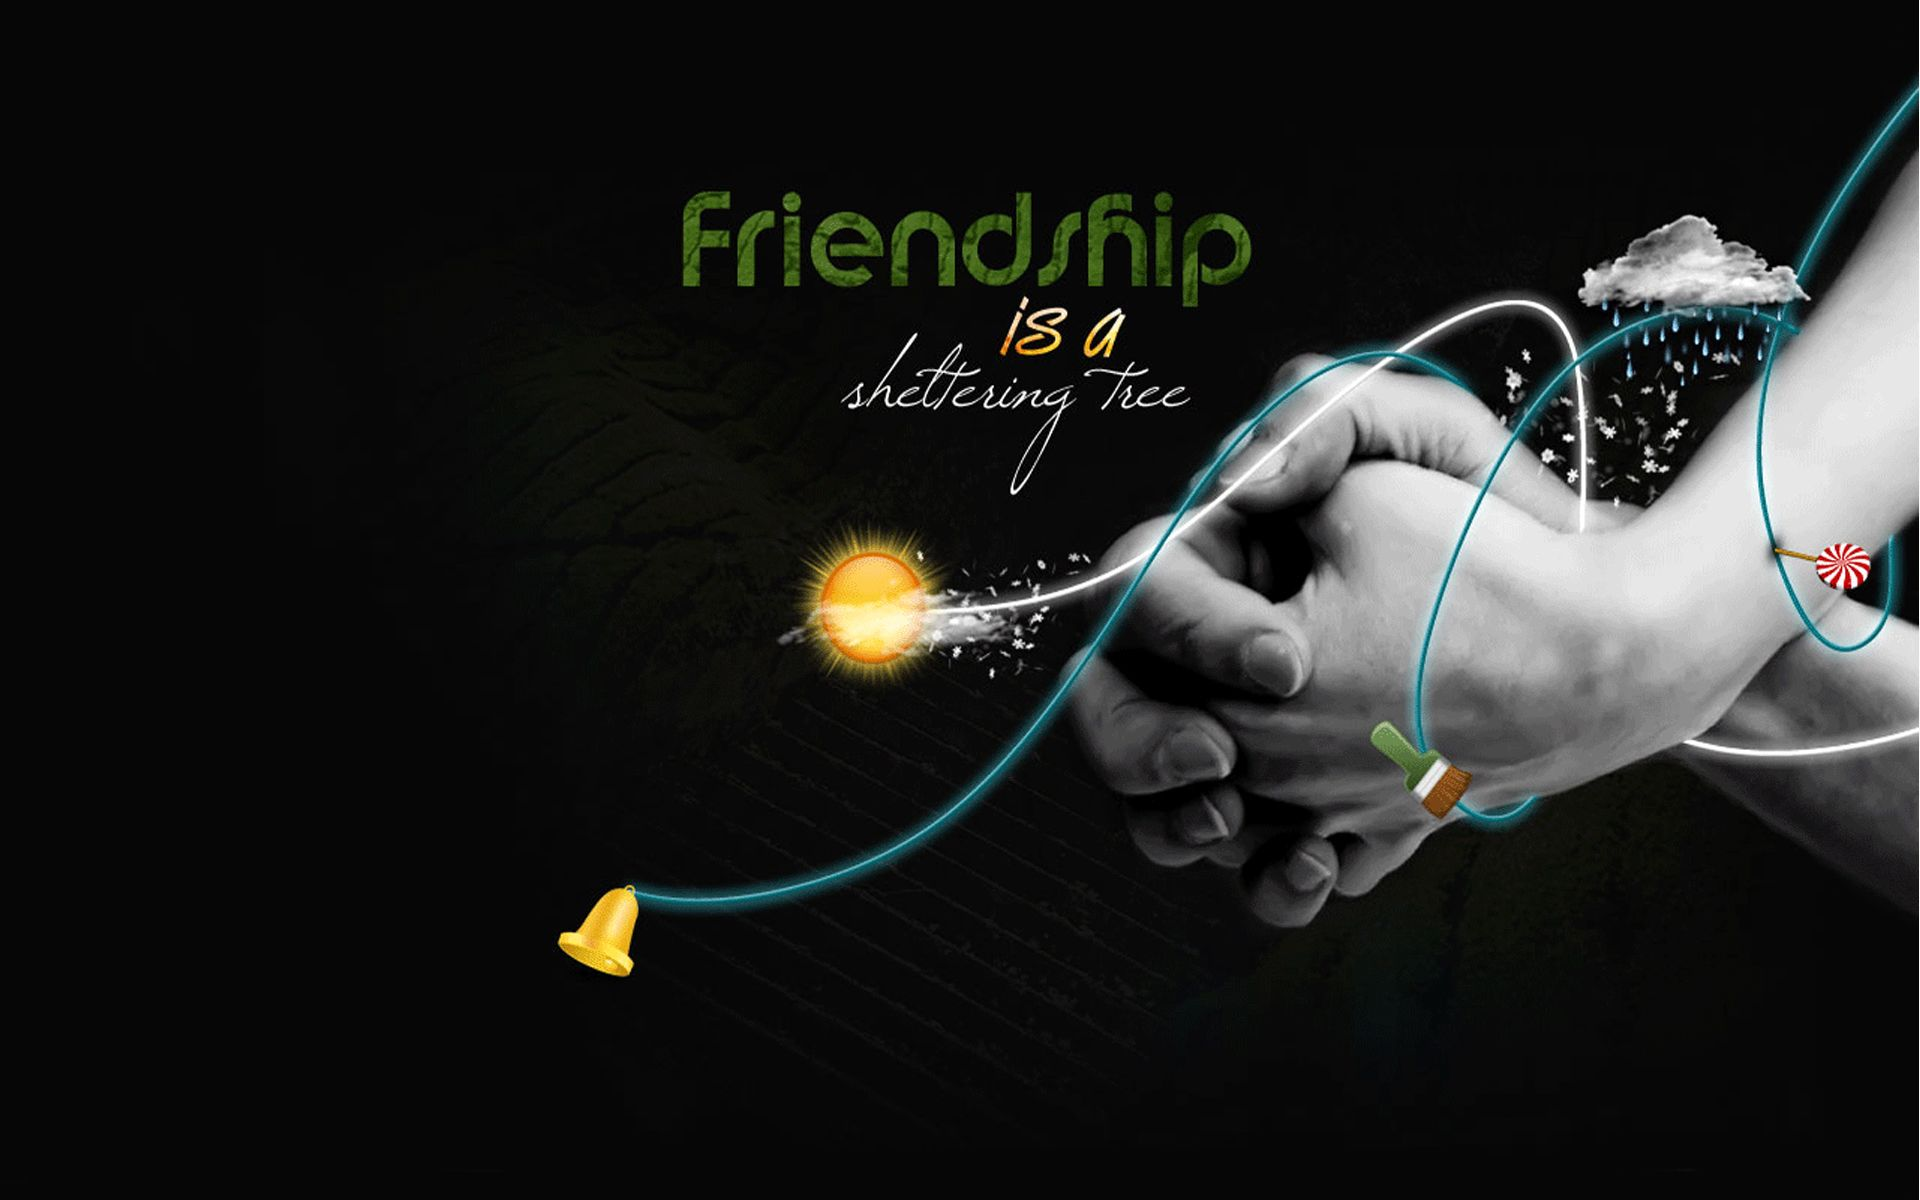 friendship pictures download free friendship pictures in 2880x1800 2560x1600 1920x1200 and